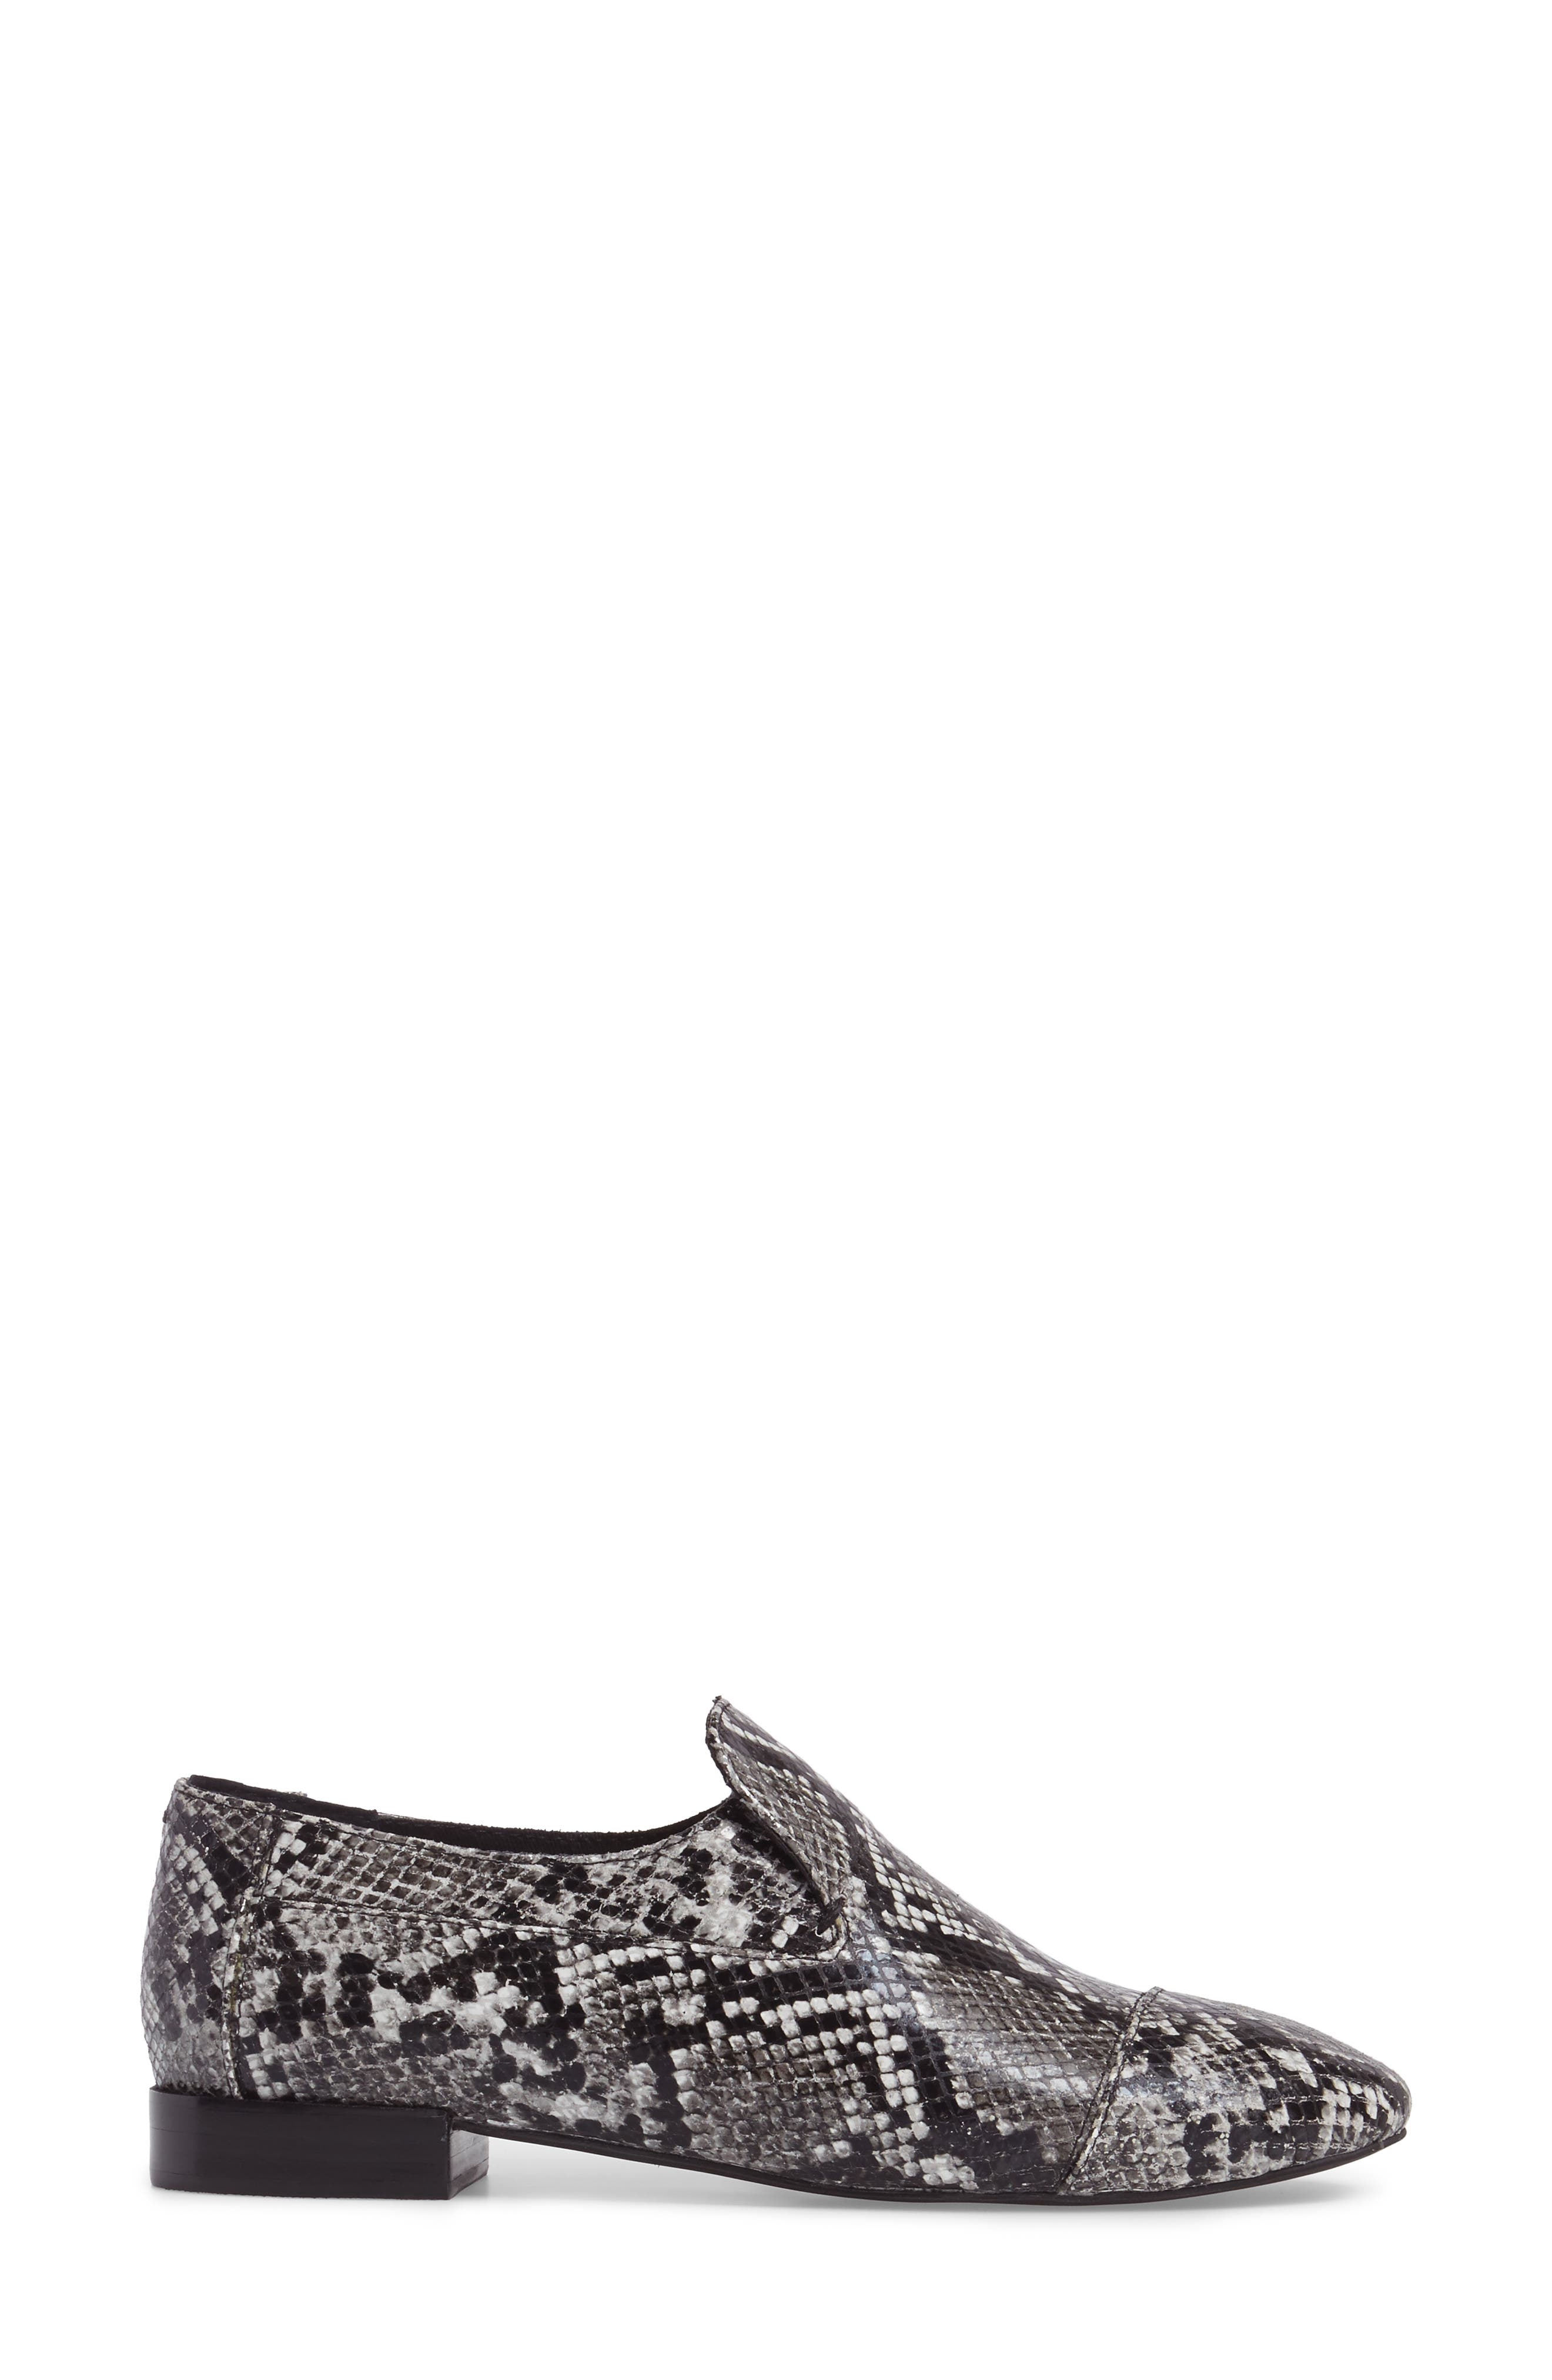 Alternate Image 3  - Jeffrey Campbell 'Bryant' Cap Toe Loafer (Women)